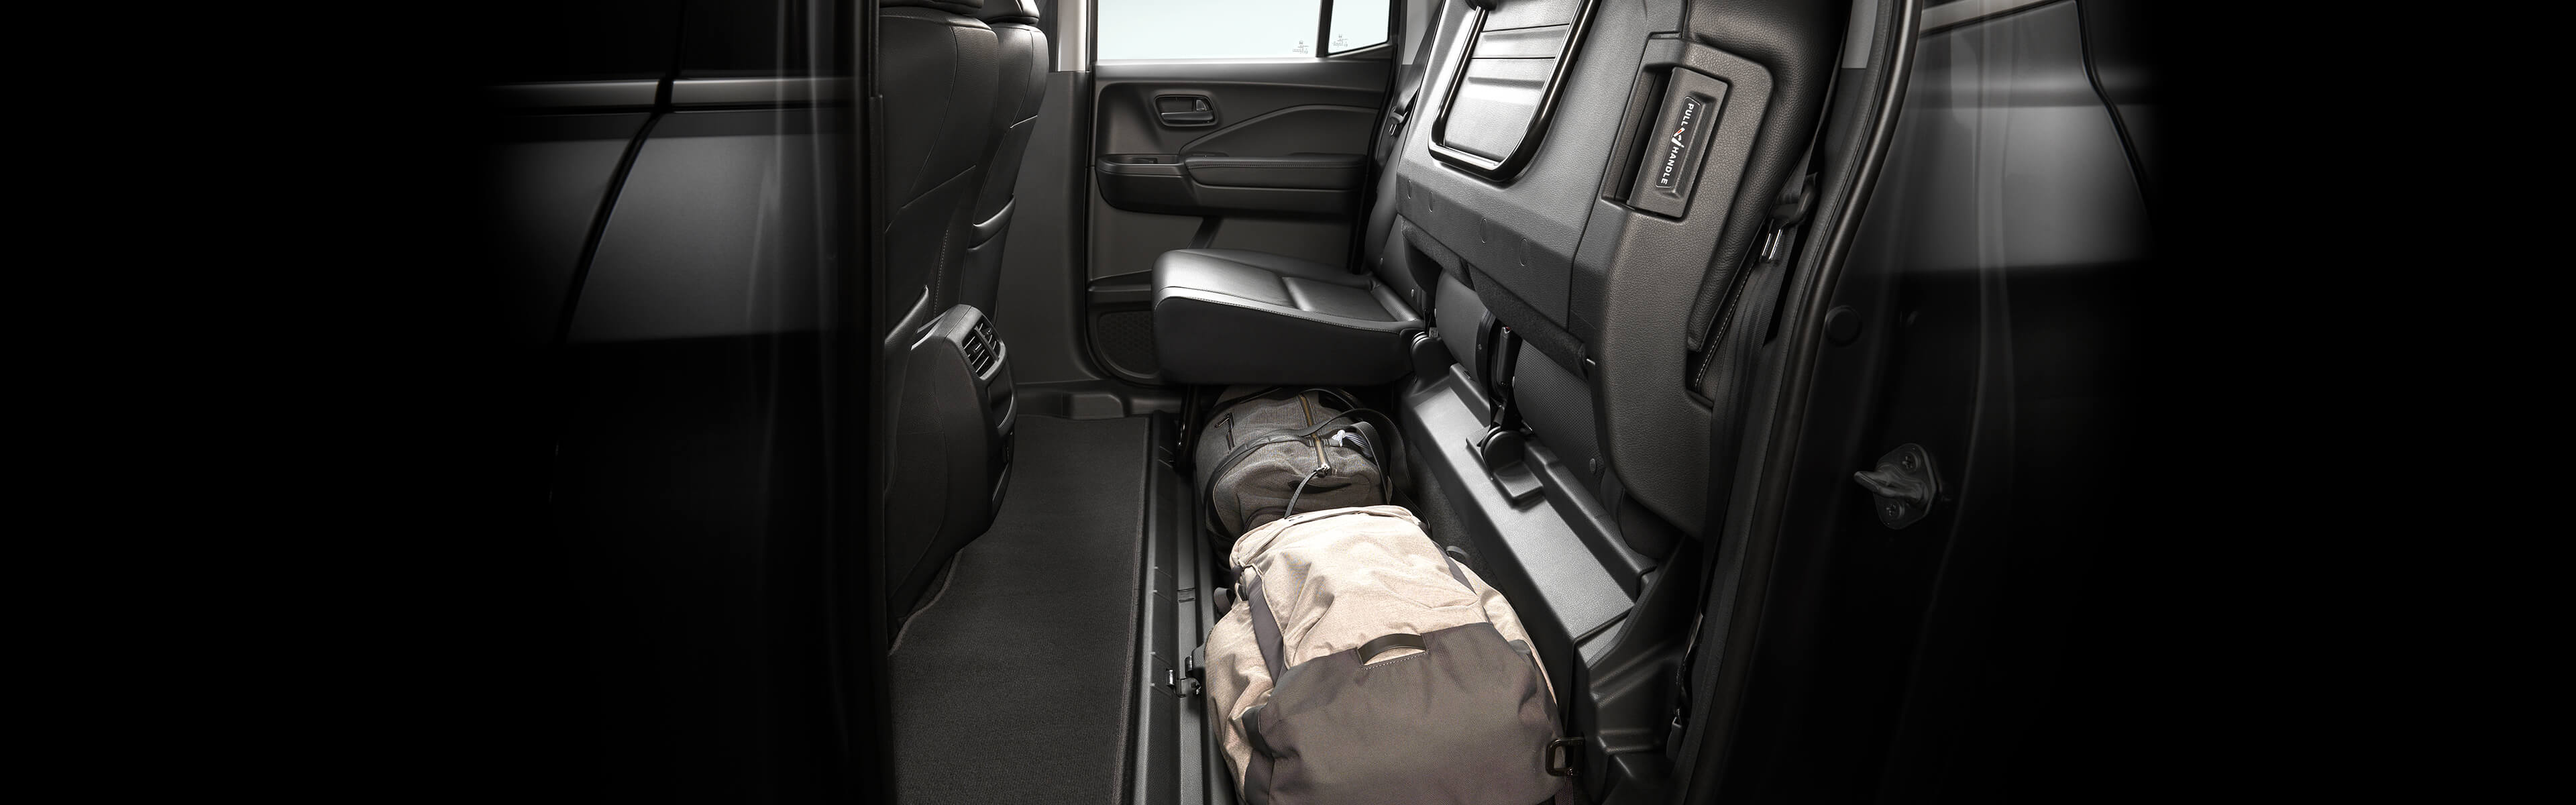 Image of 2018 Ridgeline 60/40 lift-up rear seat